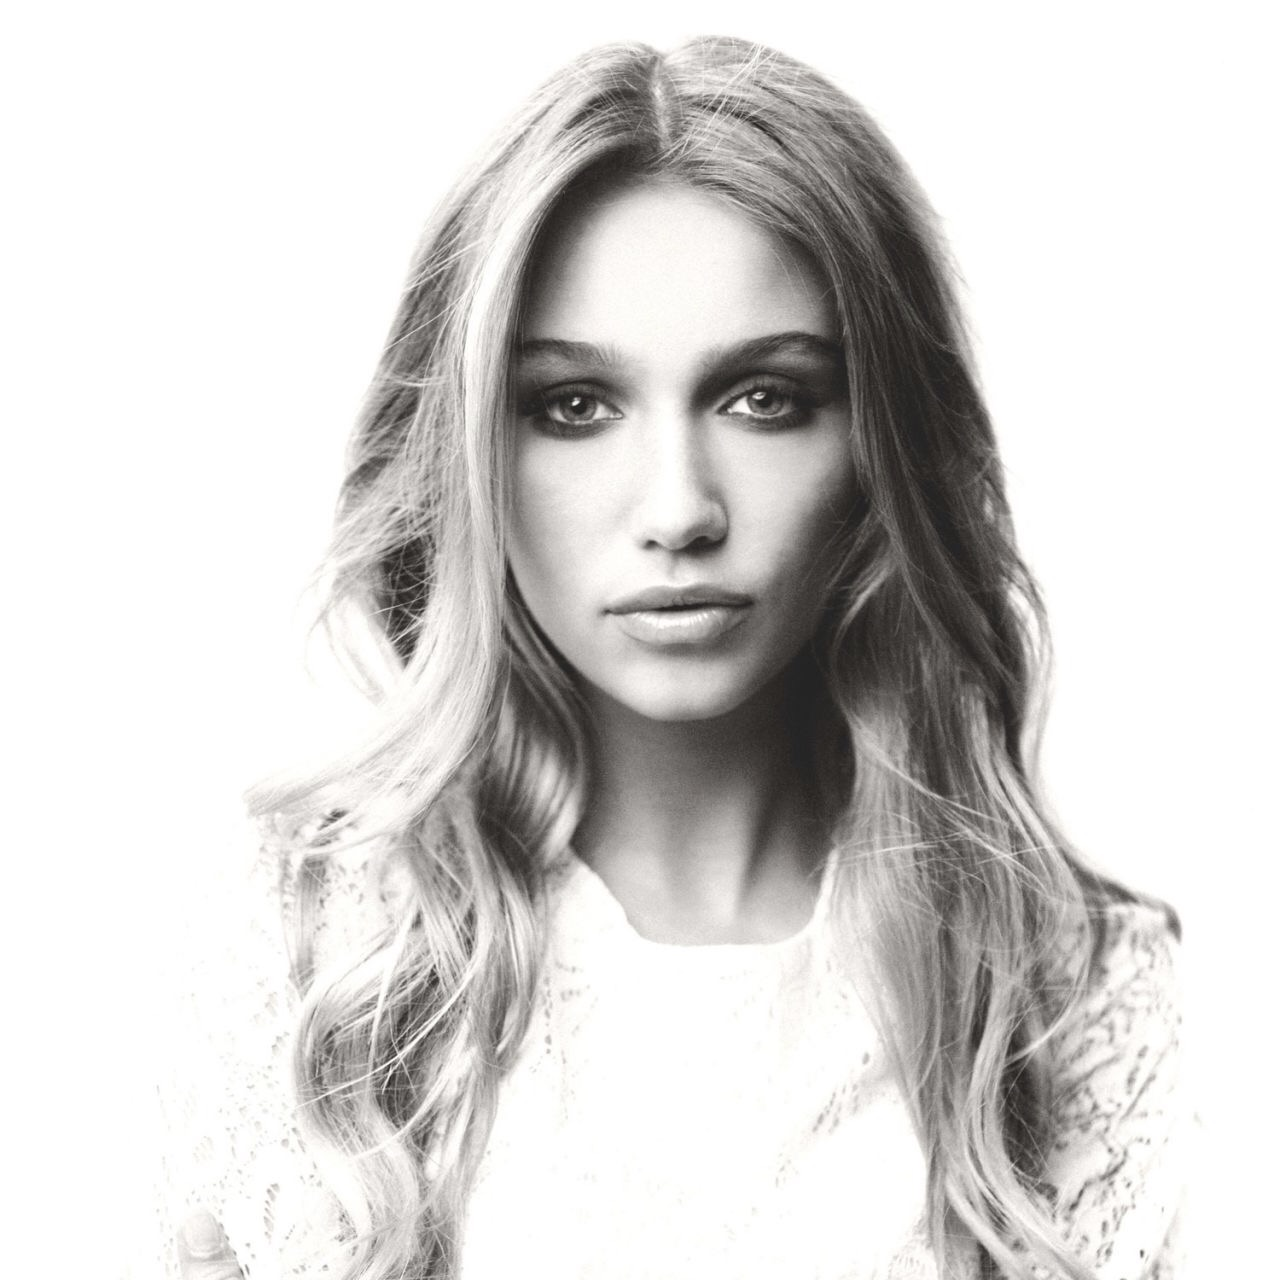 Cailin Russo